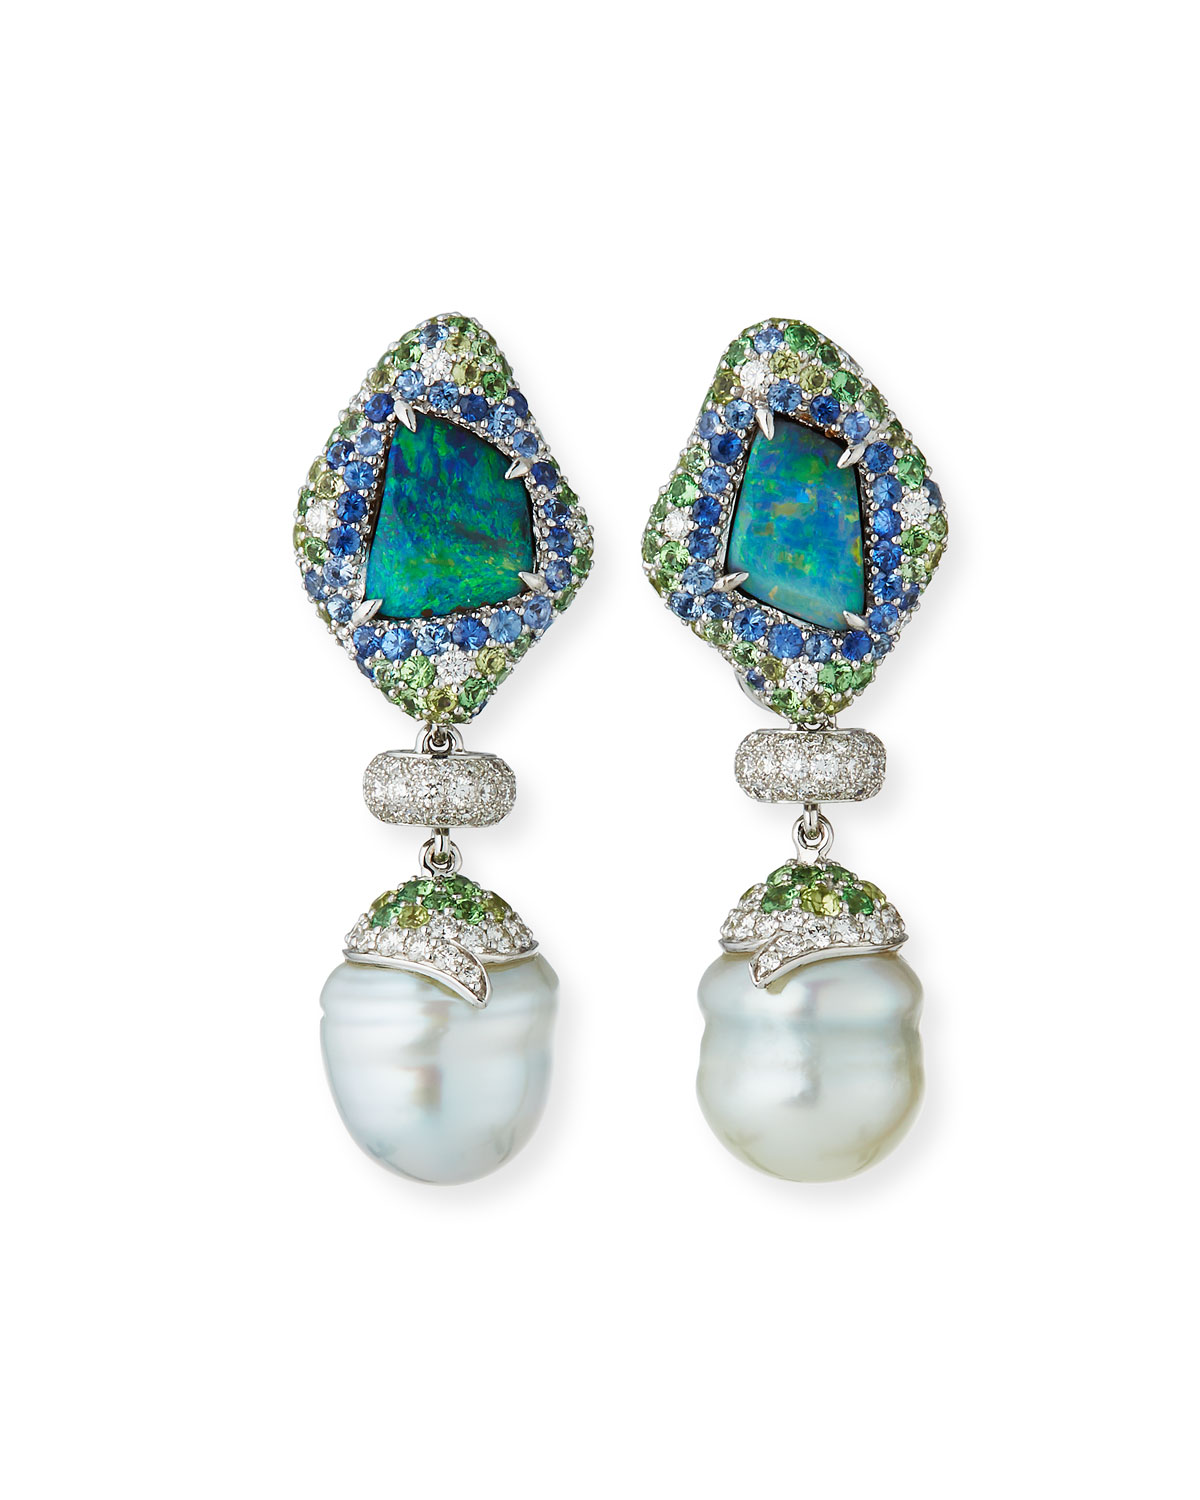 MARGOT MCKINNEY JEWELRY 18K White Gold Mixed Pave & Pearl Drop Earrings